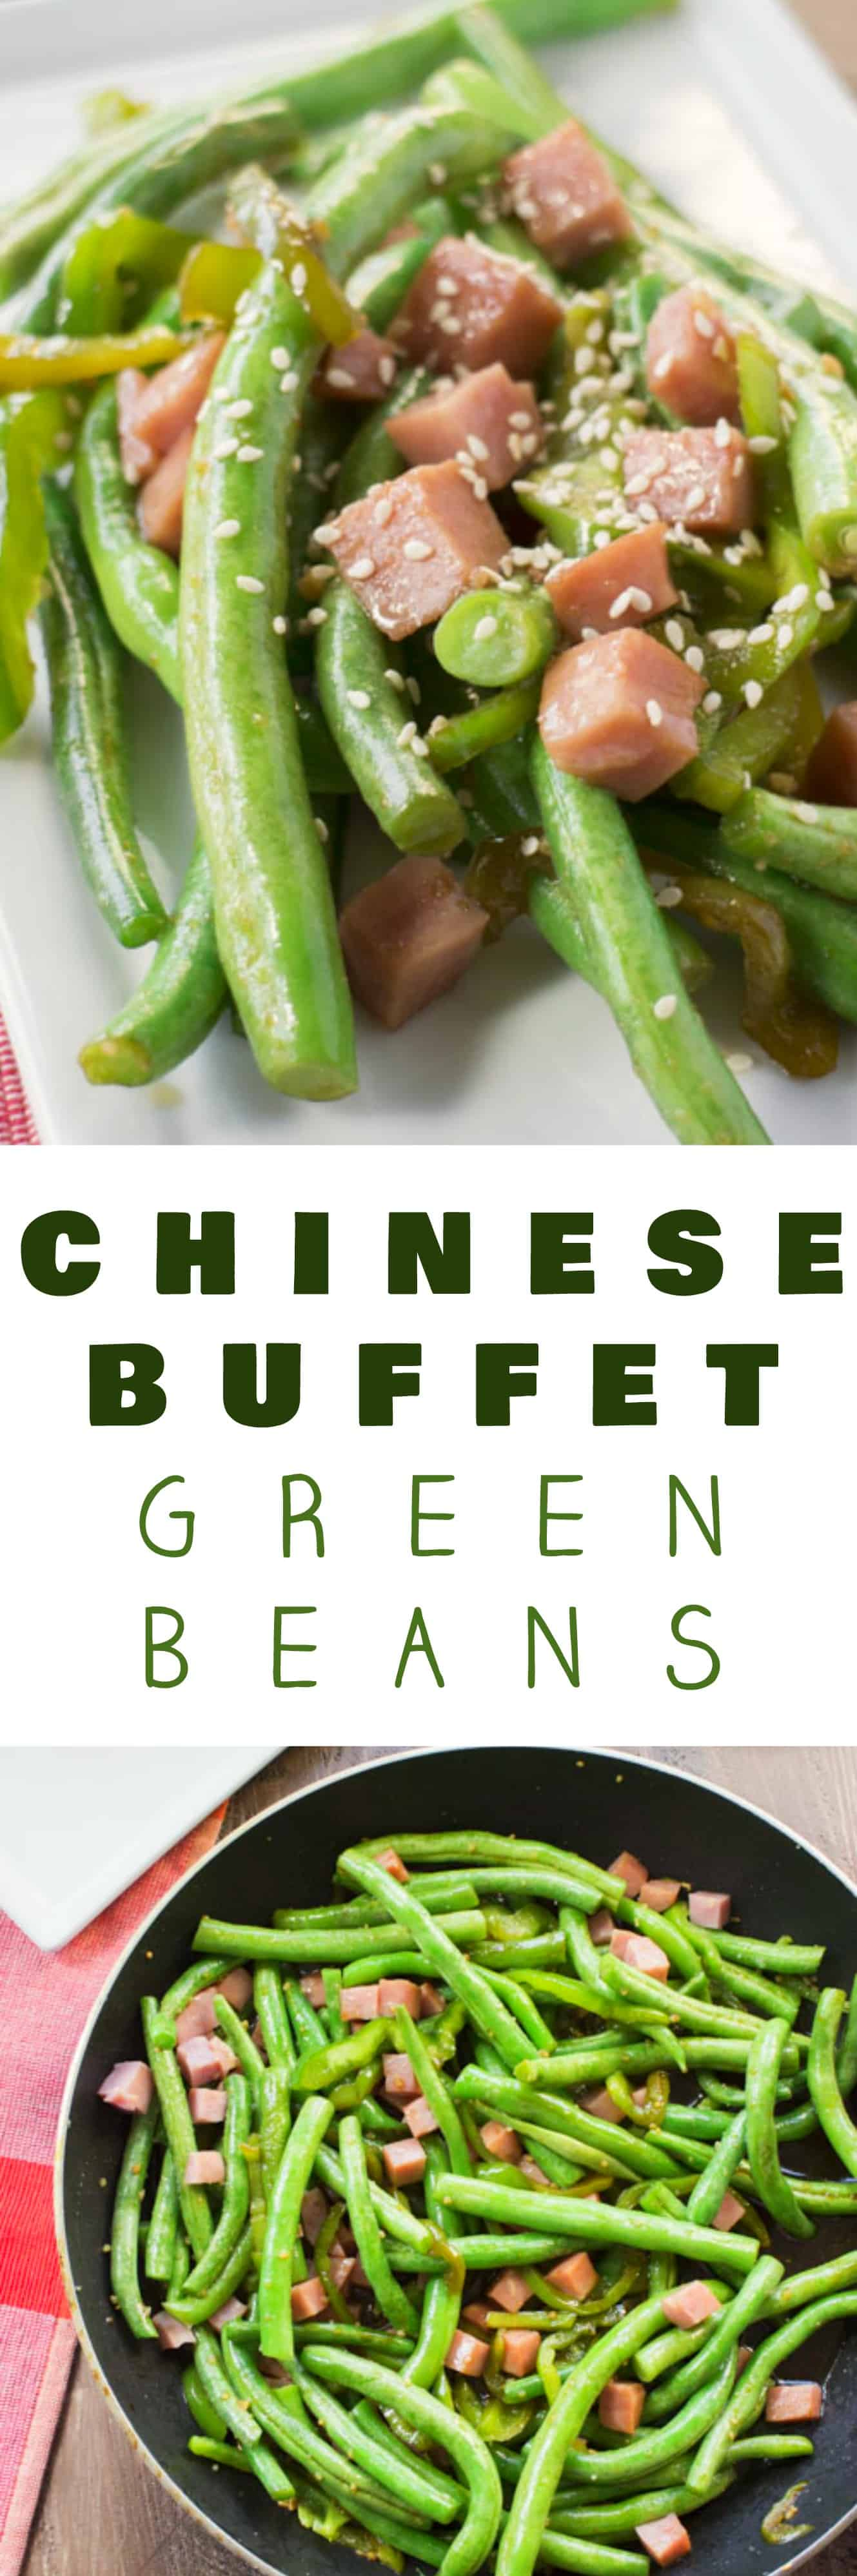 These Chinese Buffet Style Green Beans With Ham are delicious!  A soy sauce garlic sauce is added on top of the beans in this easy to make healthy recipe that only takes 15 minutes to make!